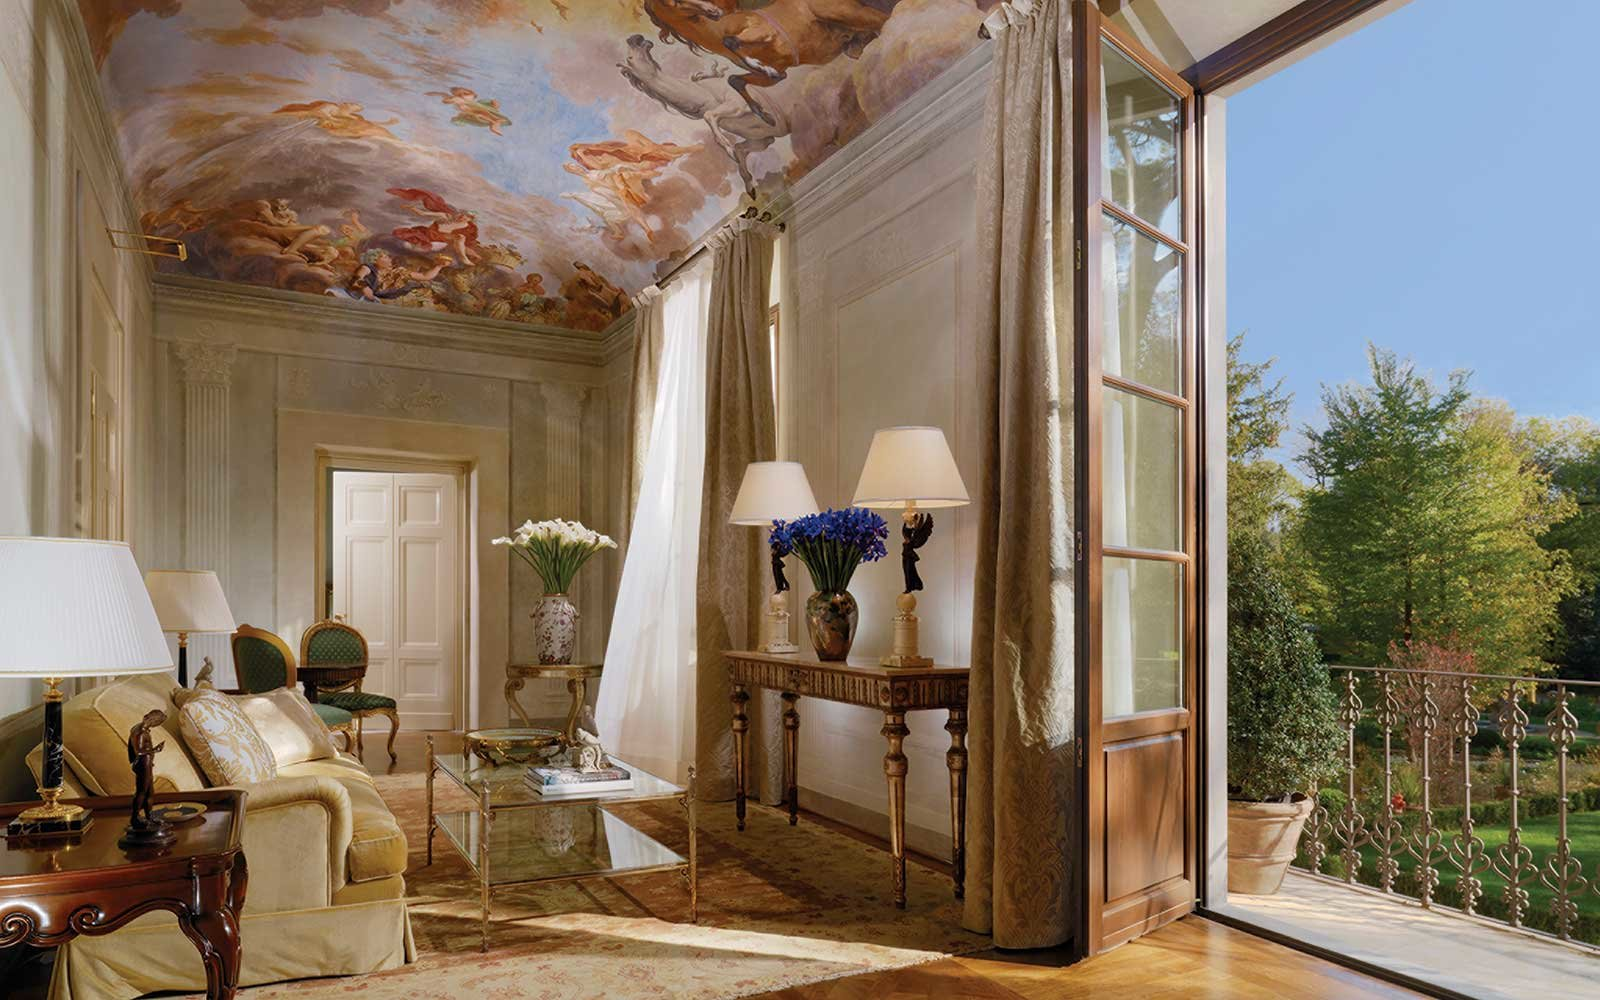 Four Seasons Hotel in Florence